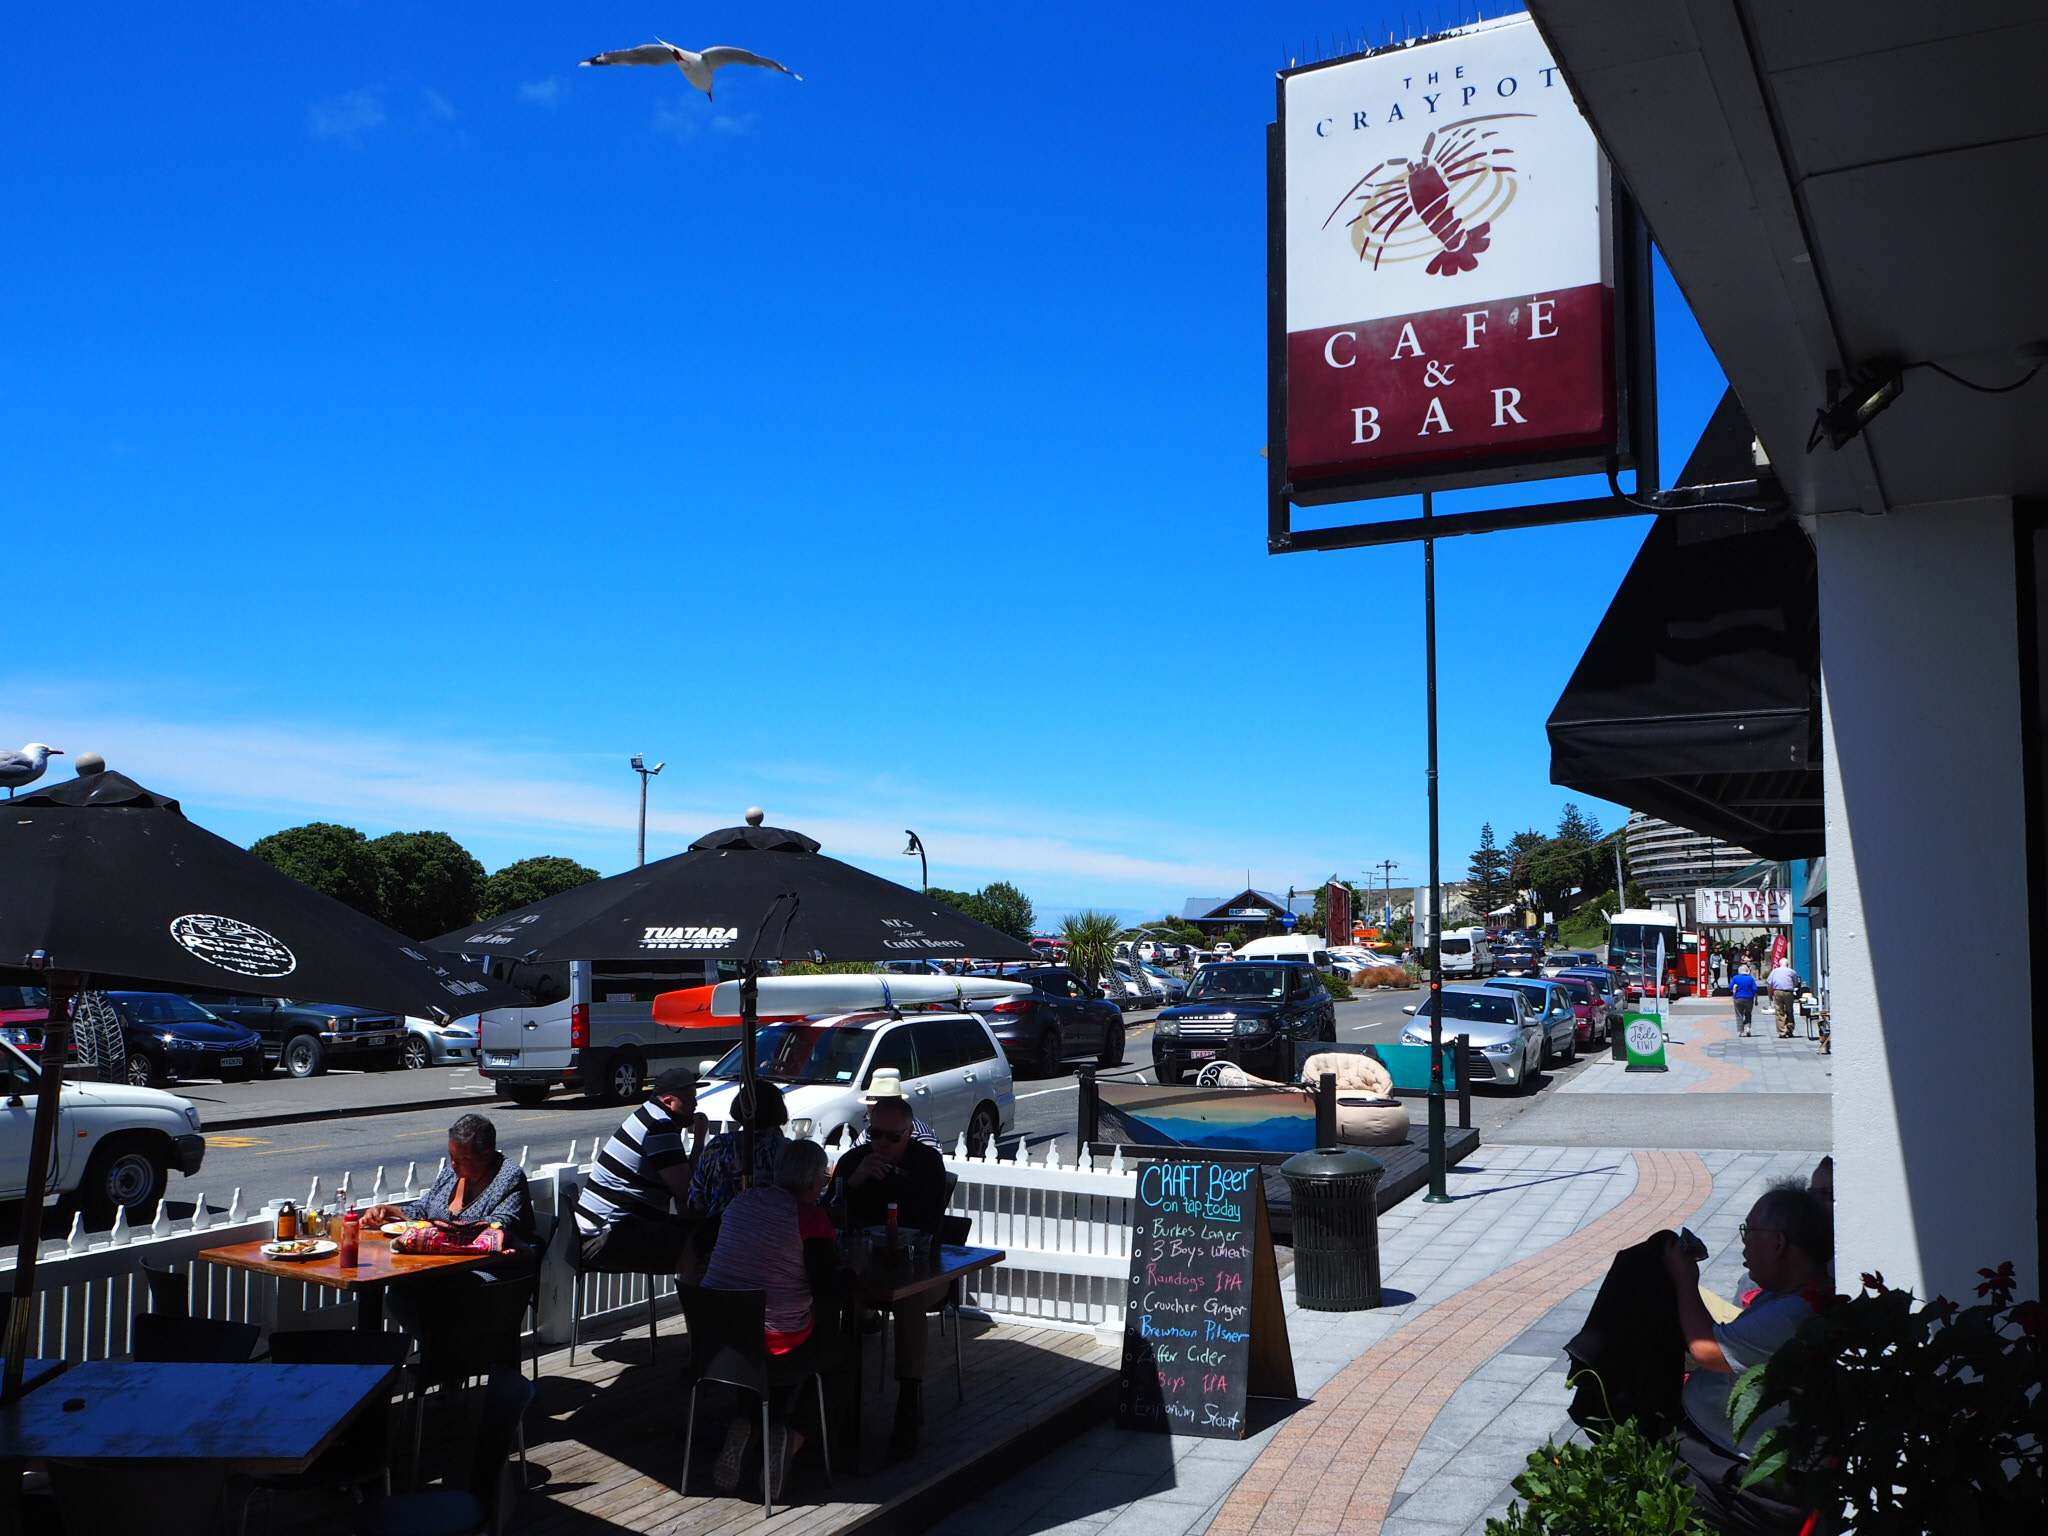 The Craypot Cafe and Bar, Kaikoura